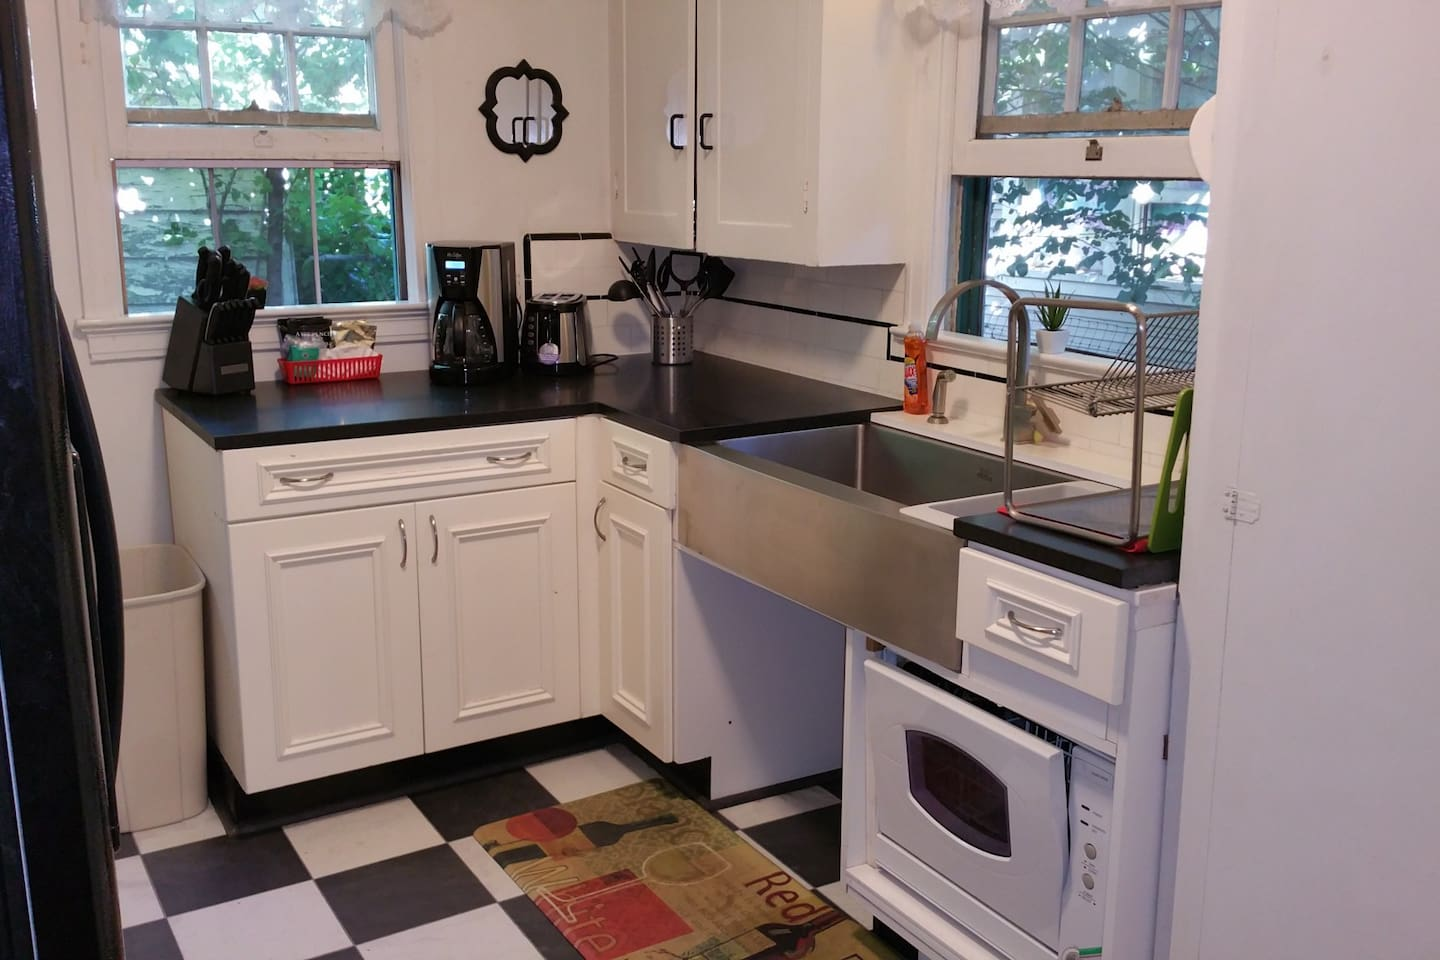 Honed Granite Countertops with $1100 Stainless Steel Farmsink in this updated kitchen. Open area underneath sink was designed as a pet feeding station. Pico Remote control at the back door runs the Welcome Home Scene, Relax Scene and All Off Scene. Never walk in the dark in this Townhome!